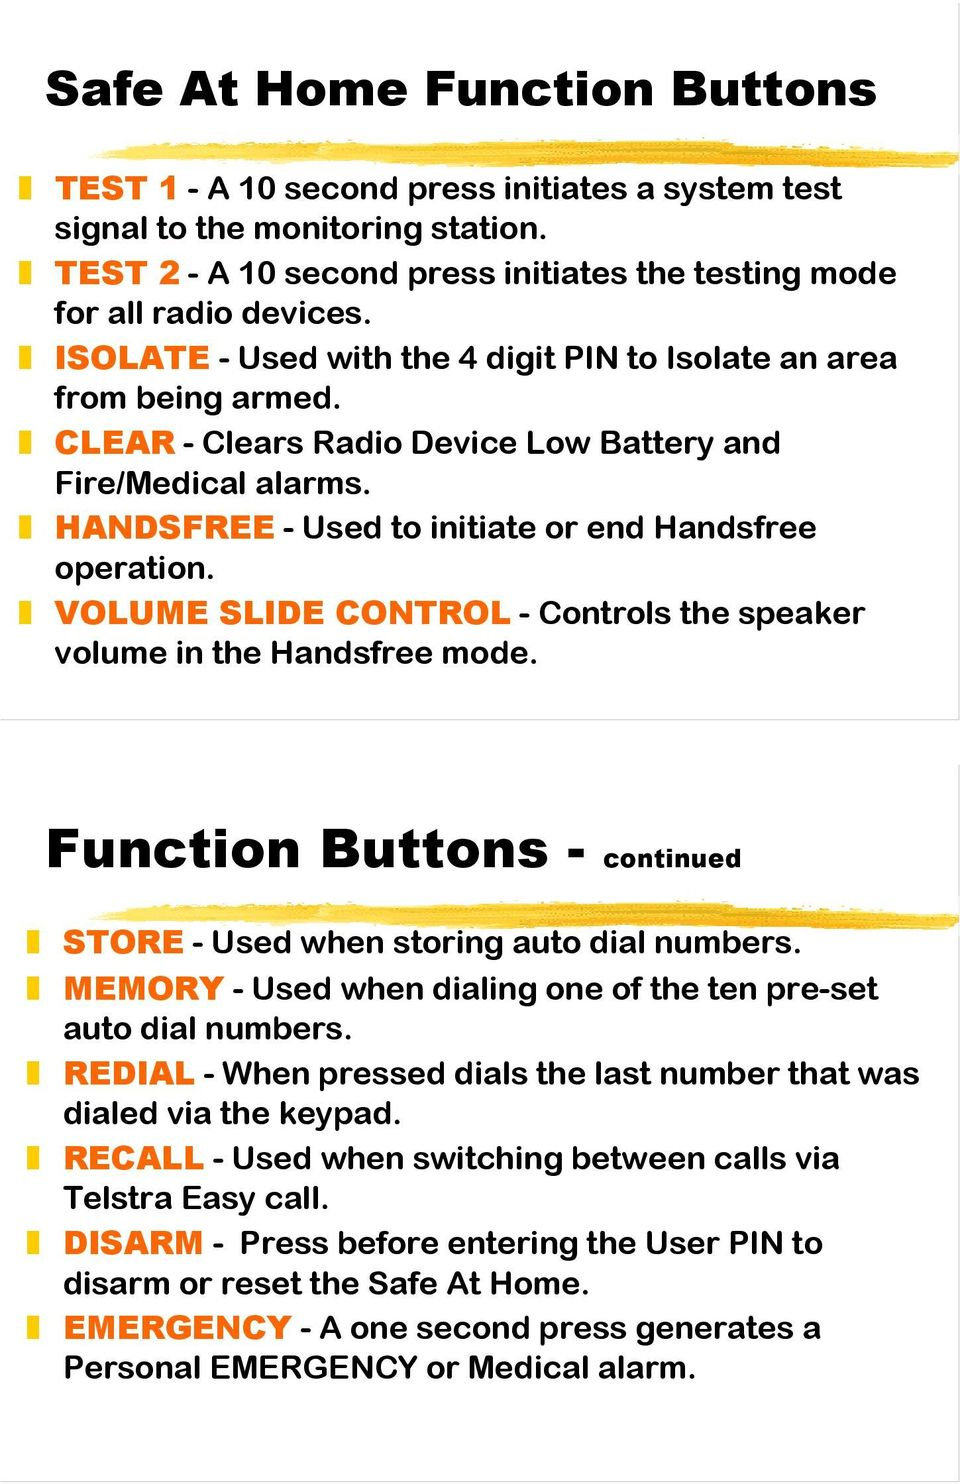 VOLUME SLIDE CONTROL - Controls the speaker volume in the Handsfree mode. Function Buttons - continued STORE - Used when storing auto dial numbers.